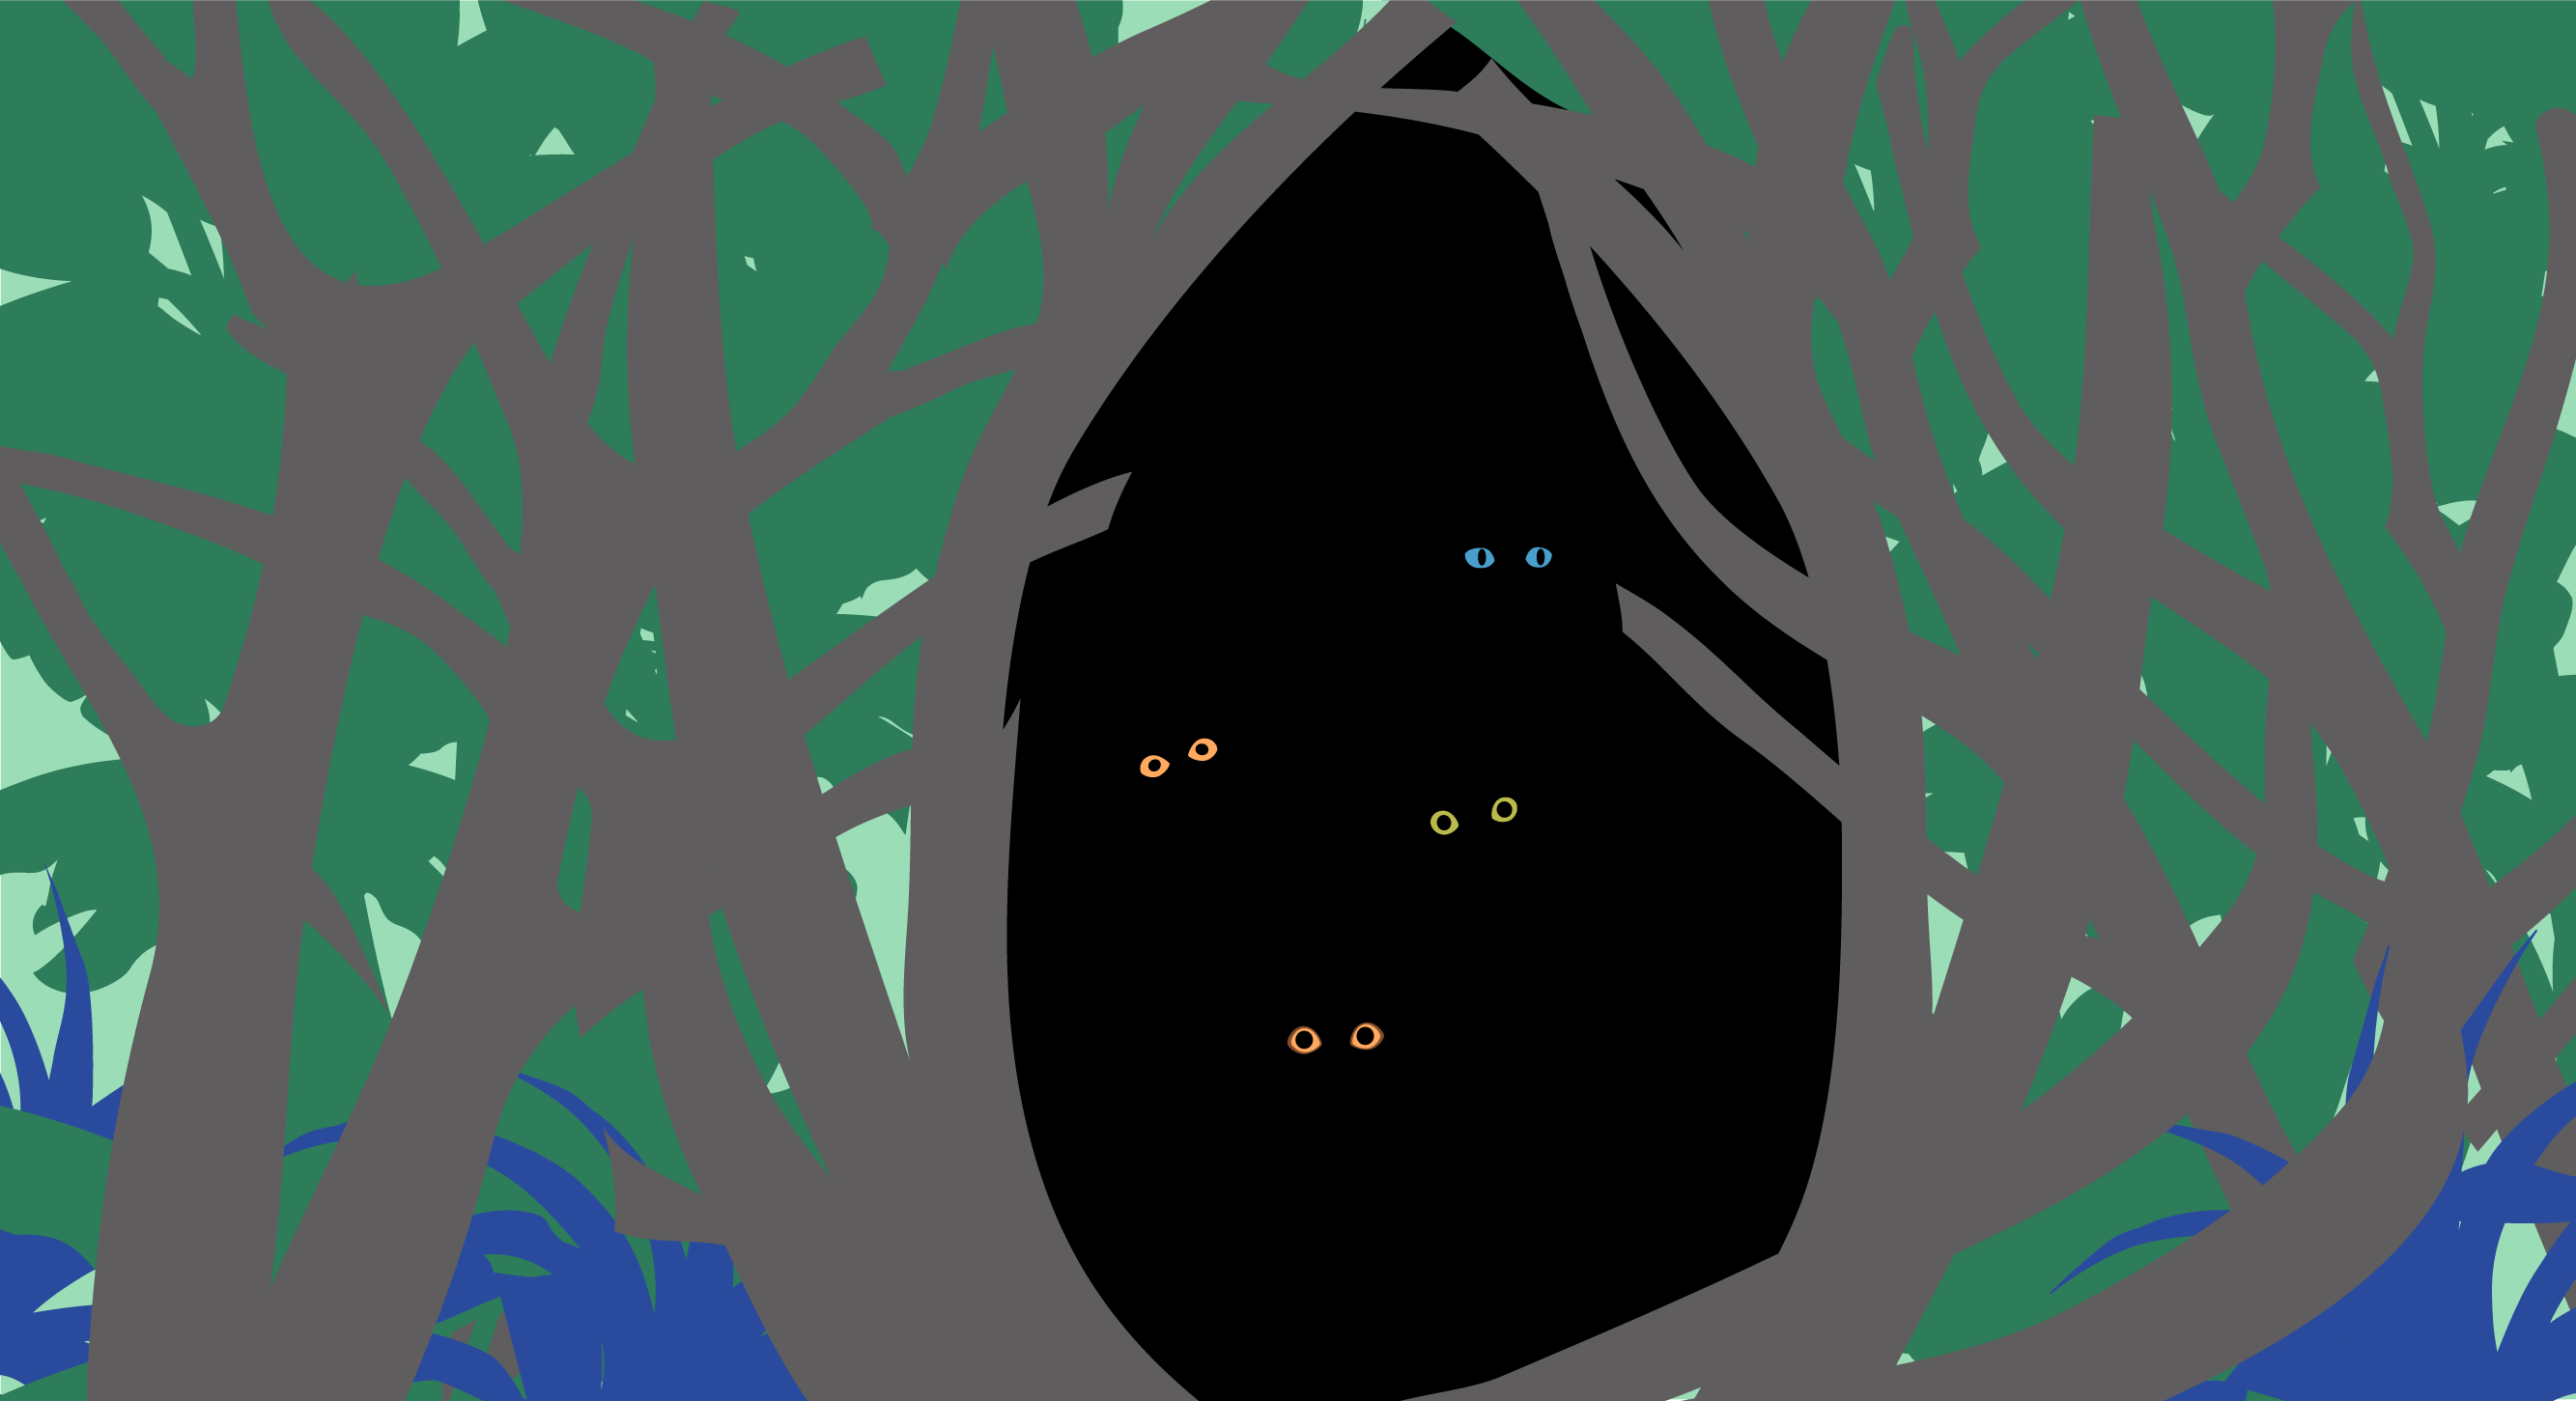 A drawing of Cat Wormhole, their eyes staring out invitingly from a world beyond